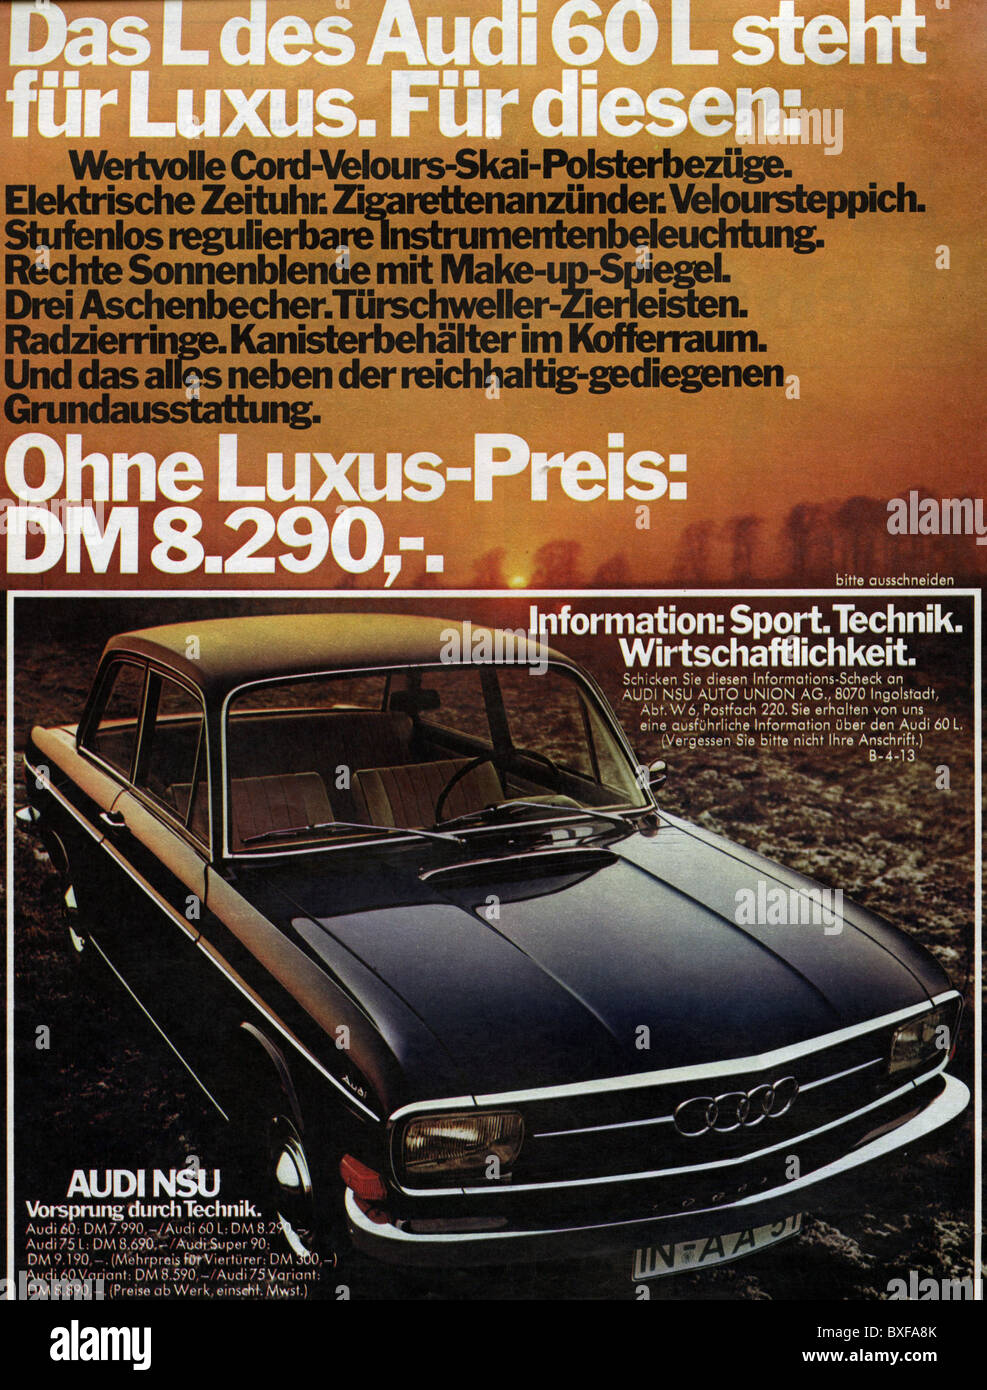 advertising, automobiles, Audi 60 L, advert in a magazine, Germany ...